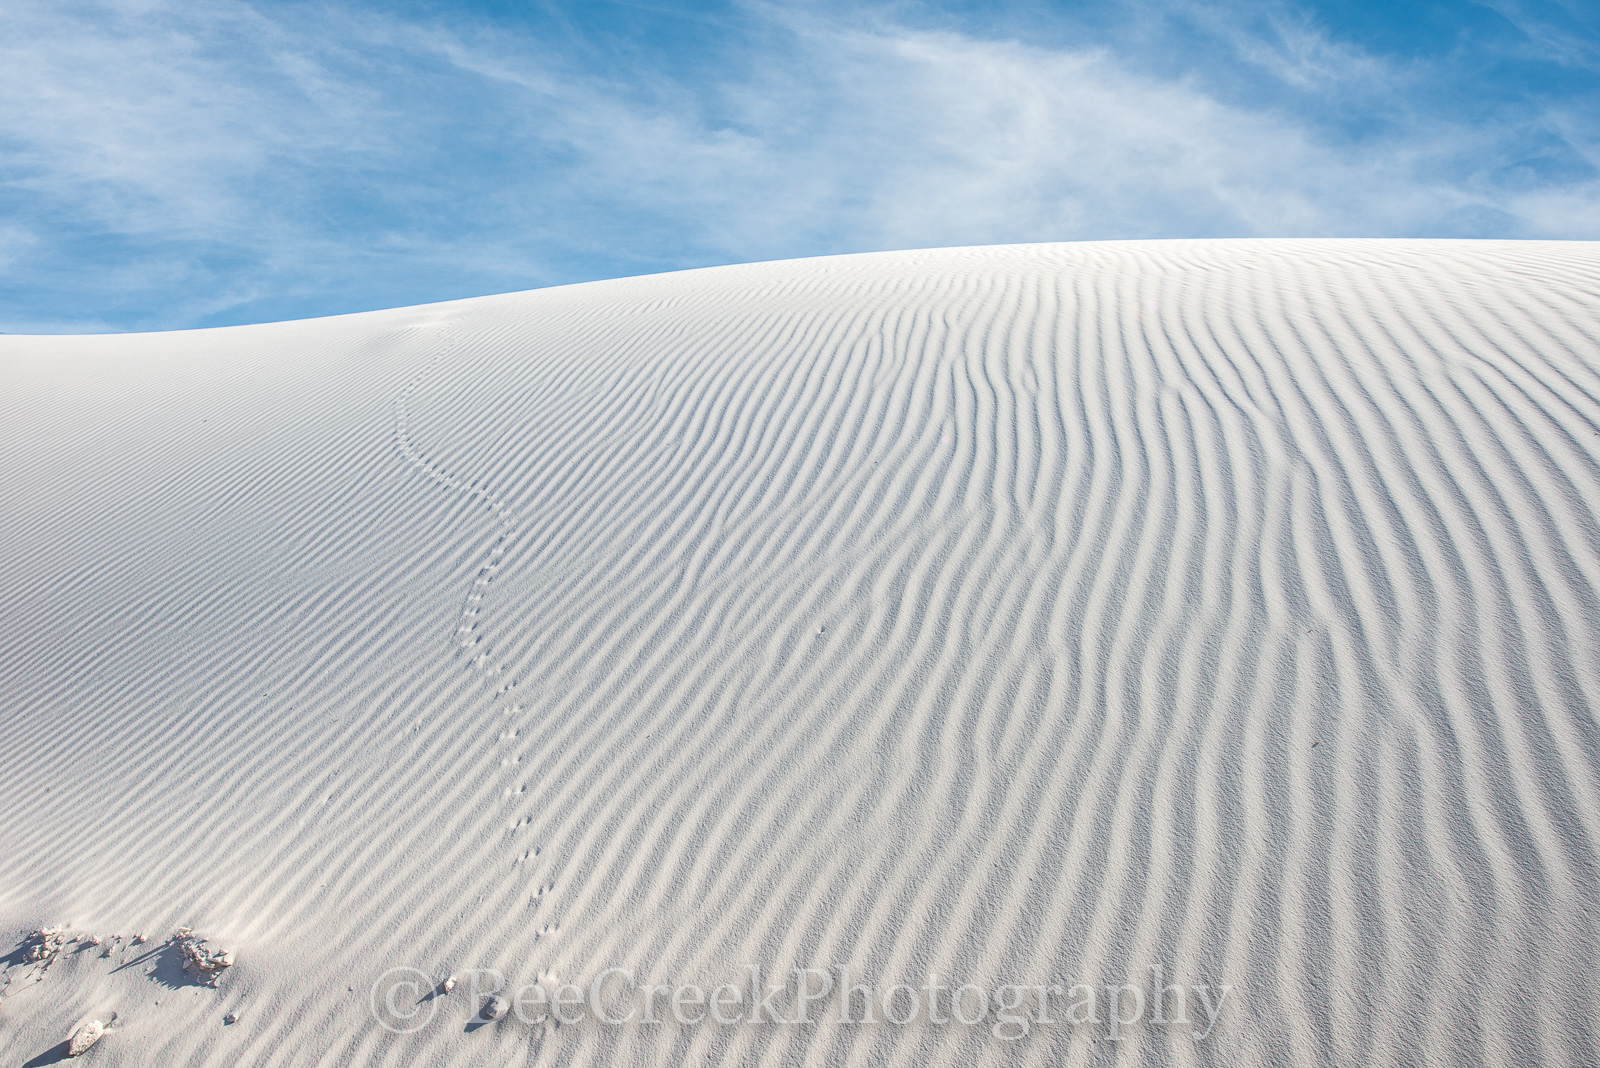 Patterns in the Sand Dunes - Coming toWhite Sand National Monument in New Mexico waslike going to the beach...